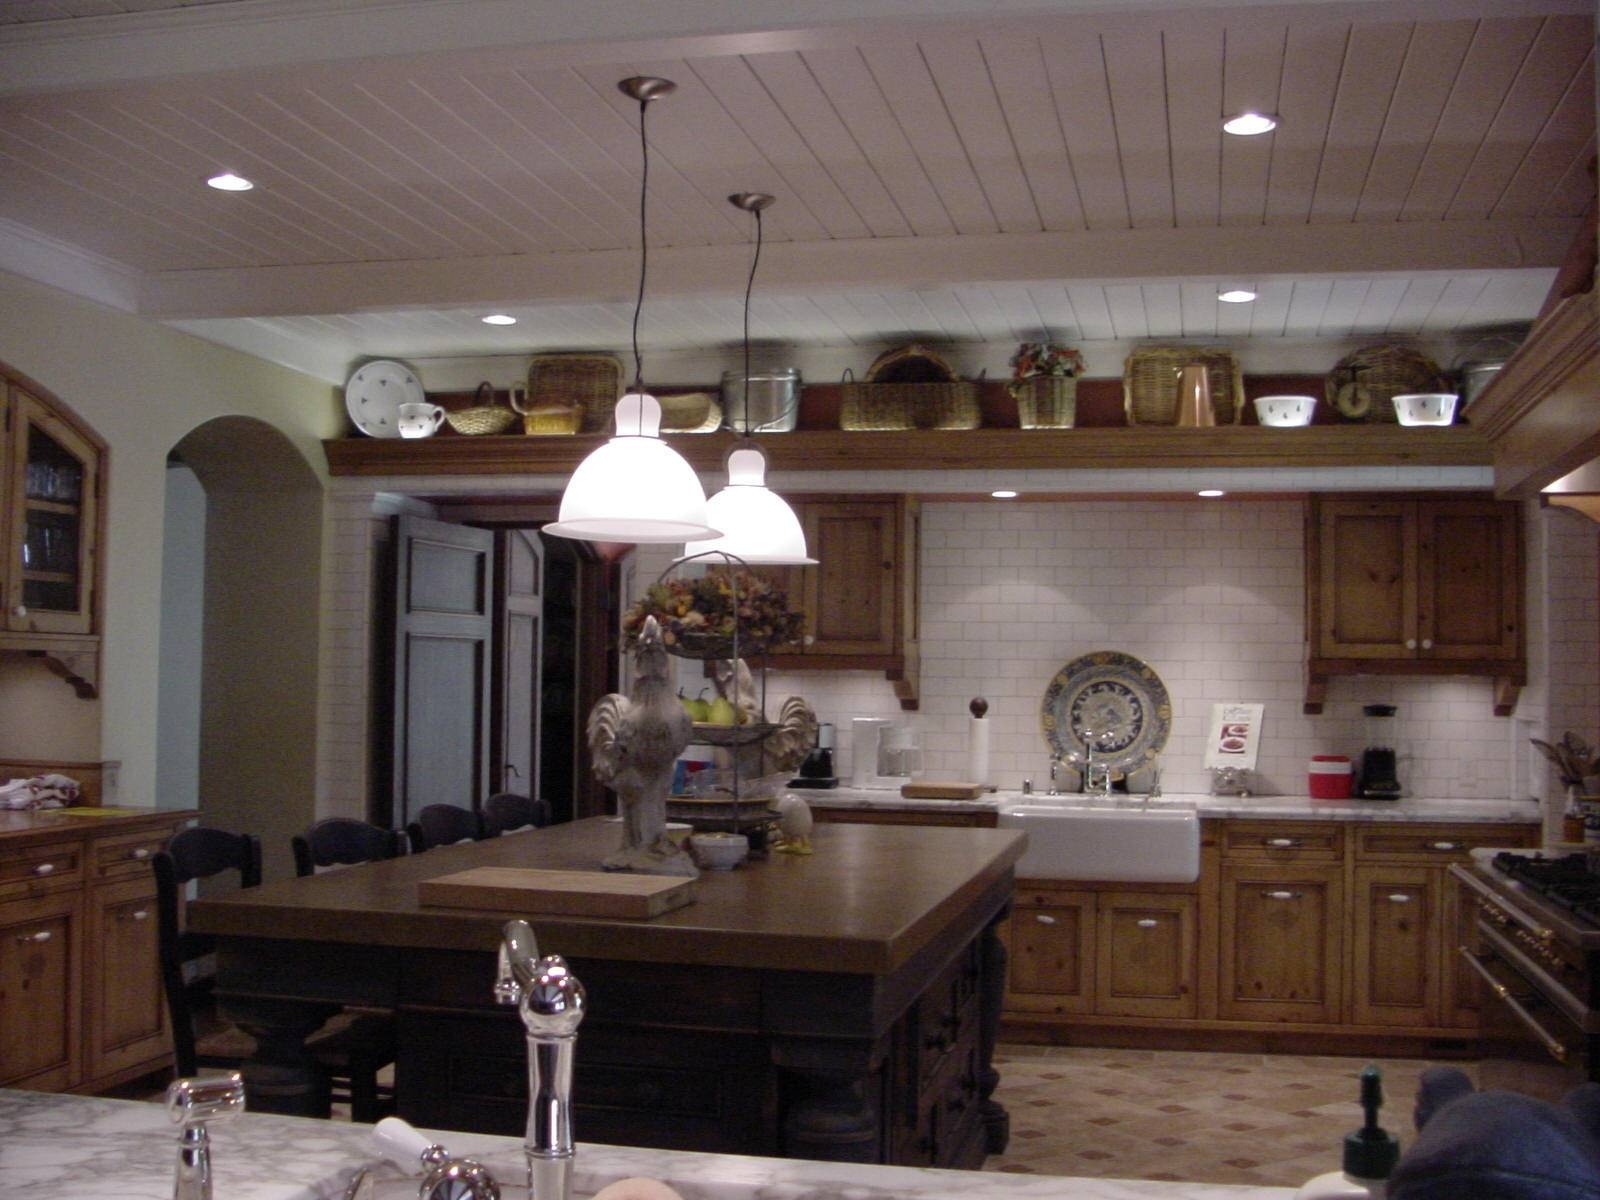 Lighting: Pendant Lighting For Kitchen With Decorative Ceiling With Stainless Steel Pendant Lights For Kitchen (View 9 of 15)